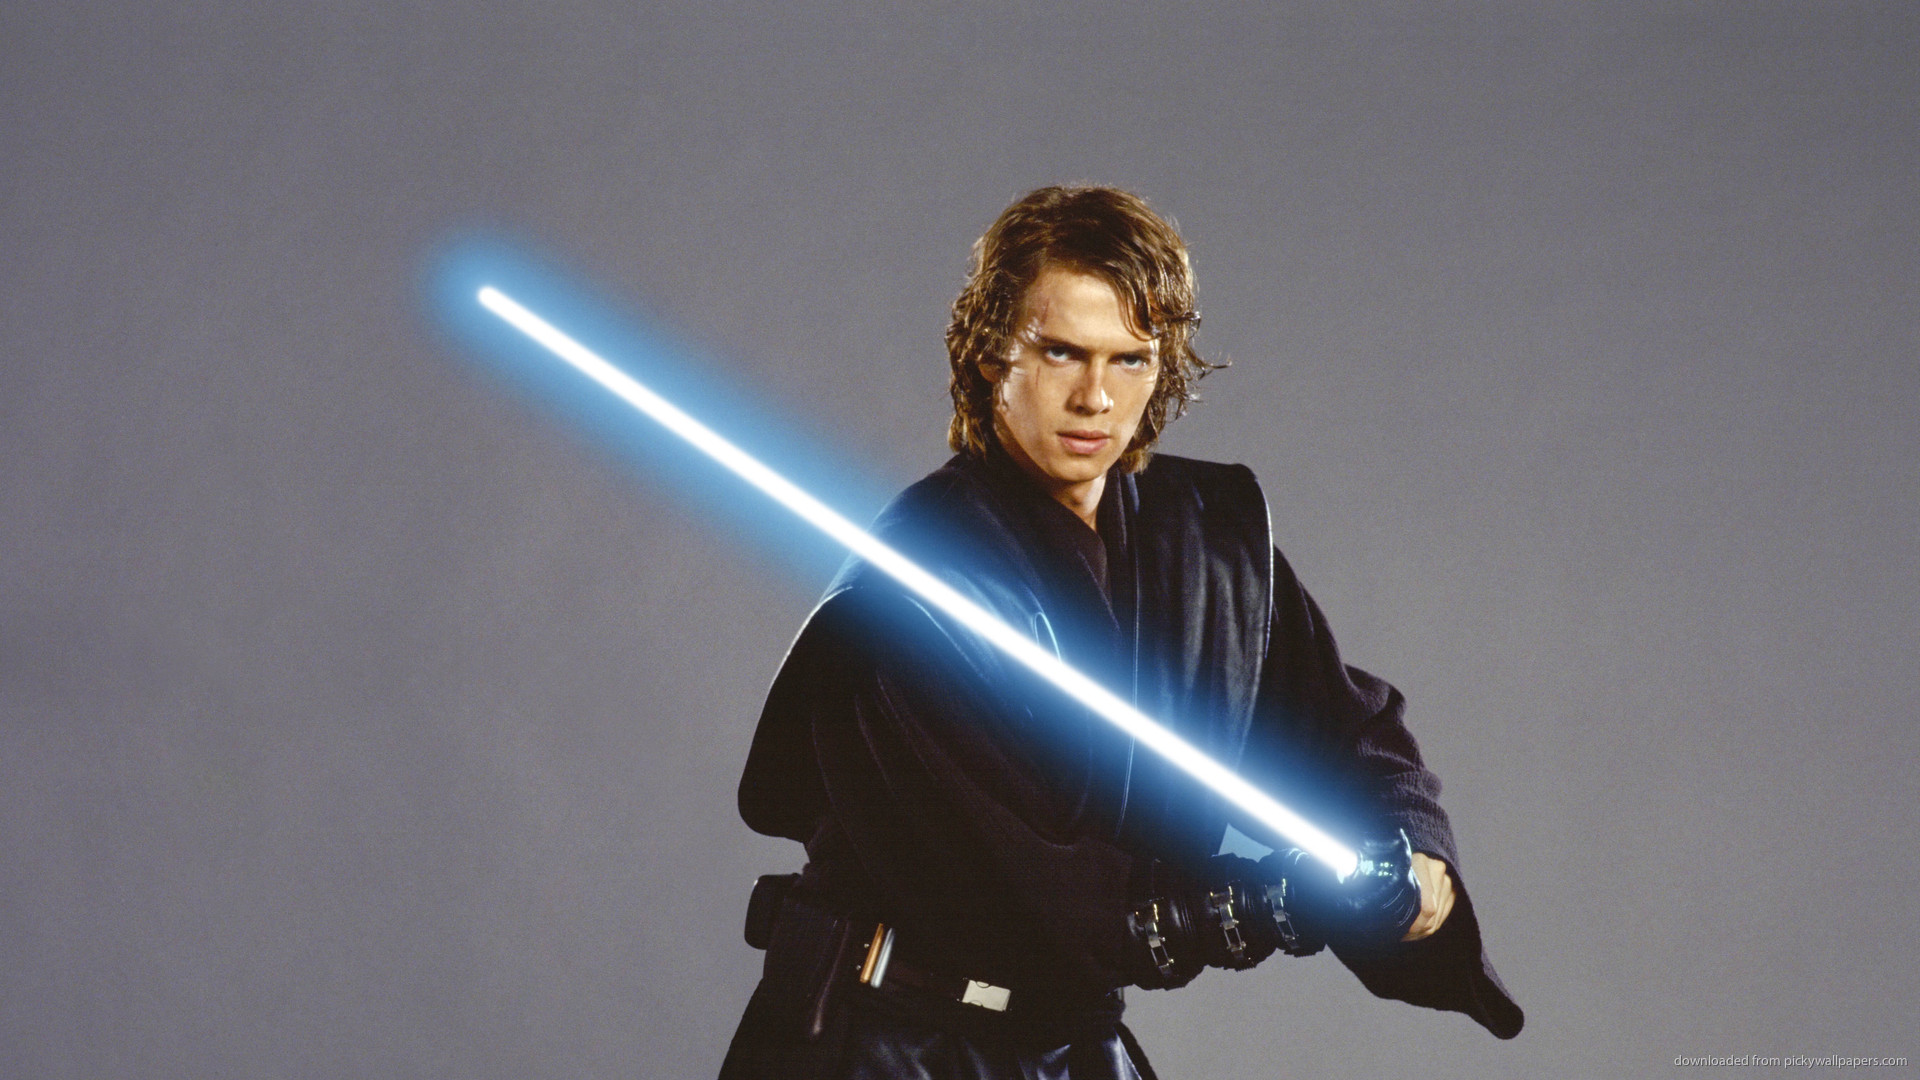 Download 1920x1080 Anakin Skywalker With Jedi Lightsaber Wallpaper 1920x1080